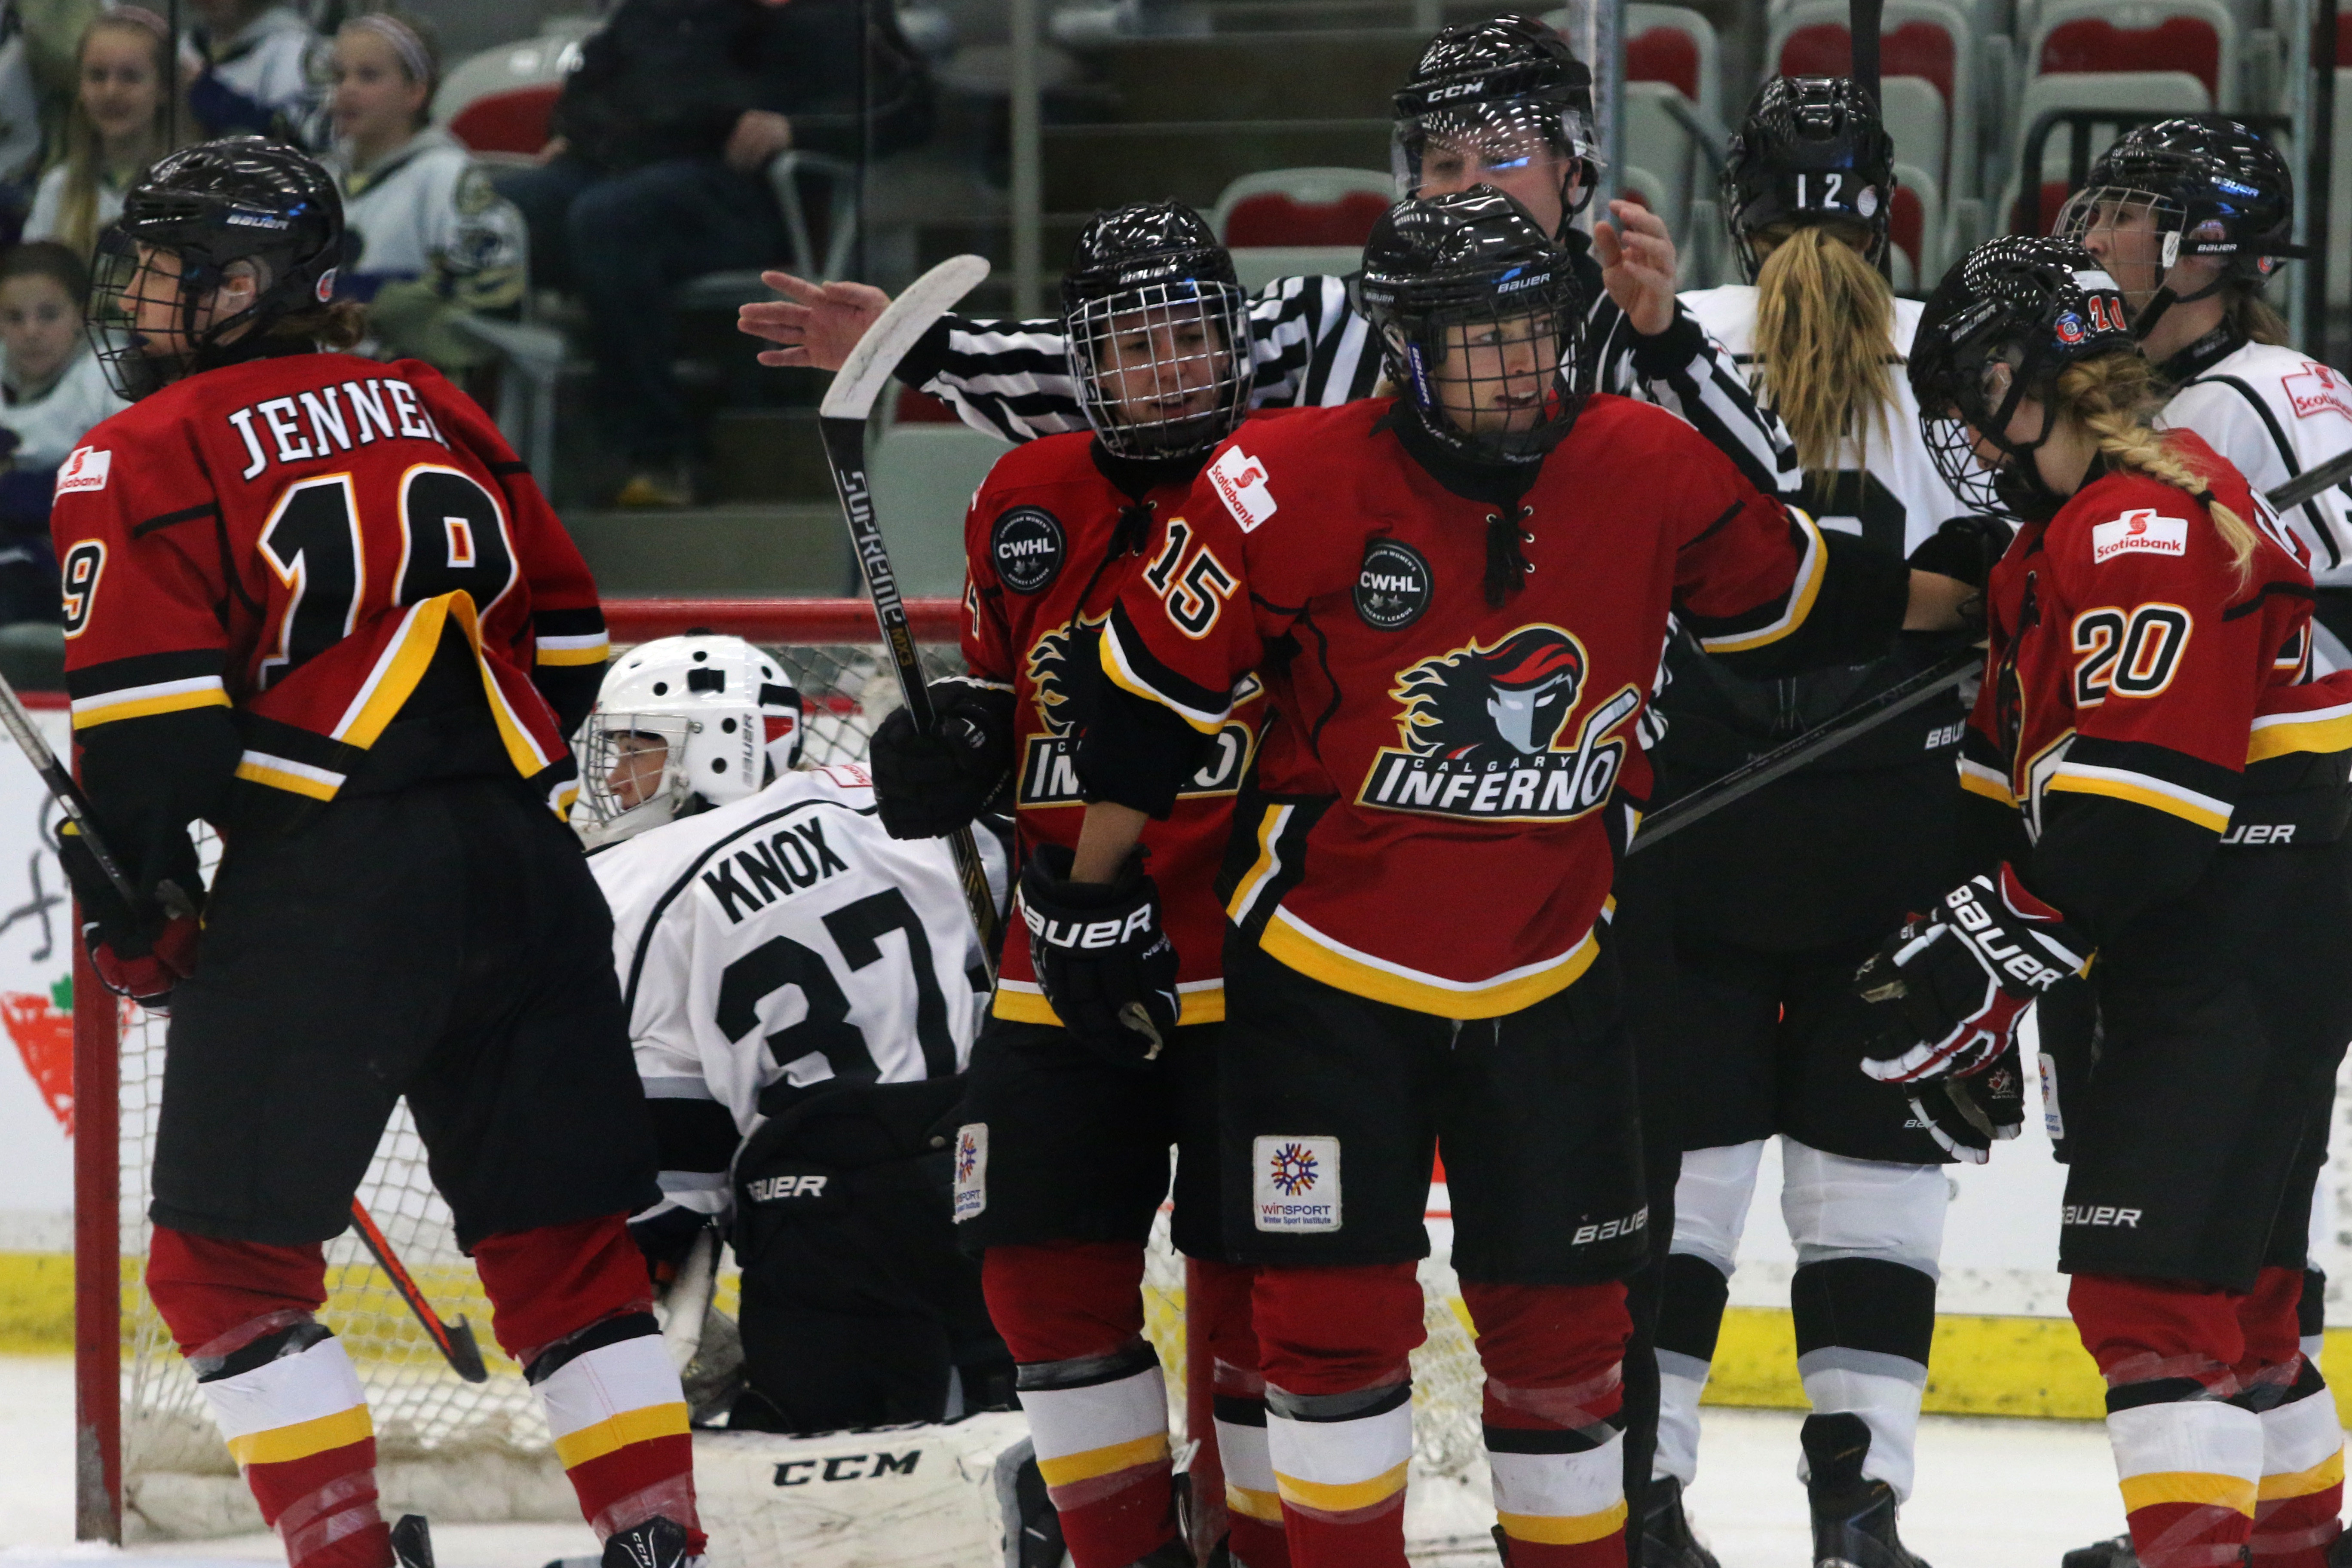 The Calgary Inferno are looking to light up the lamp early and often against the Brampton Thunder at Winsport this weekend, for a chance to get to the Clarkson Cup Final for the first time in franchise history.